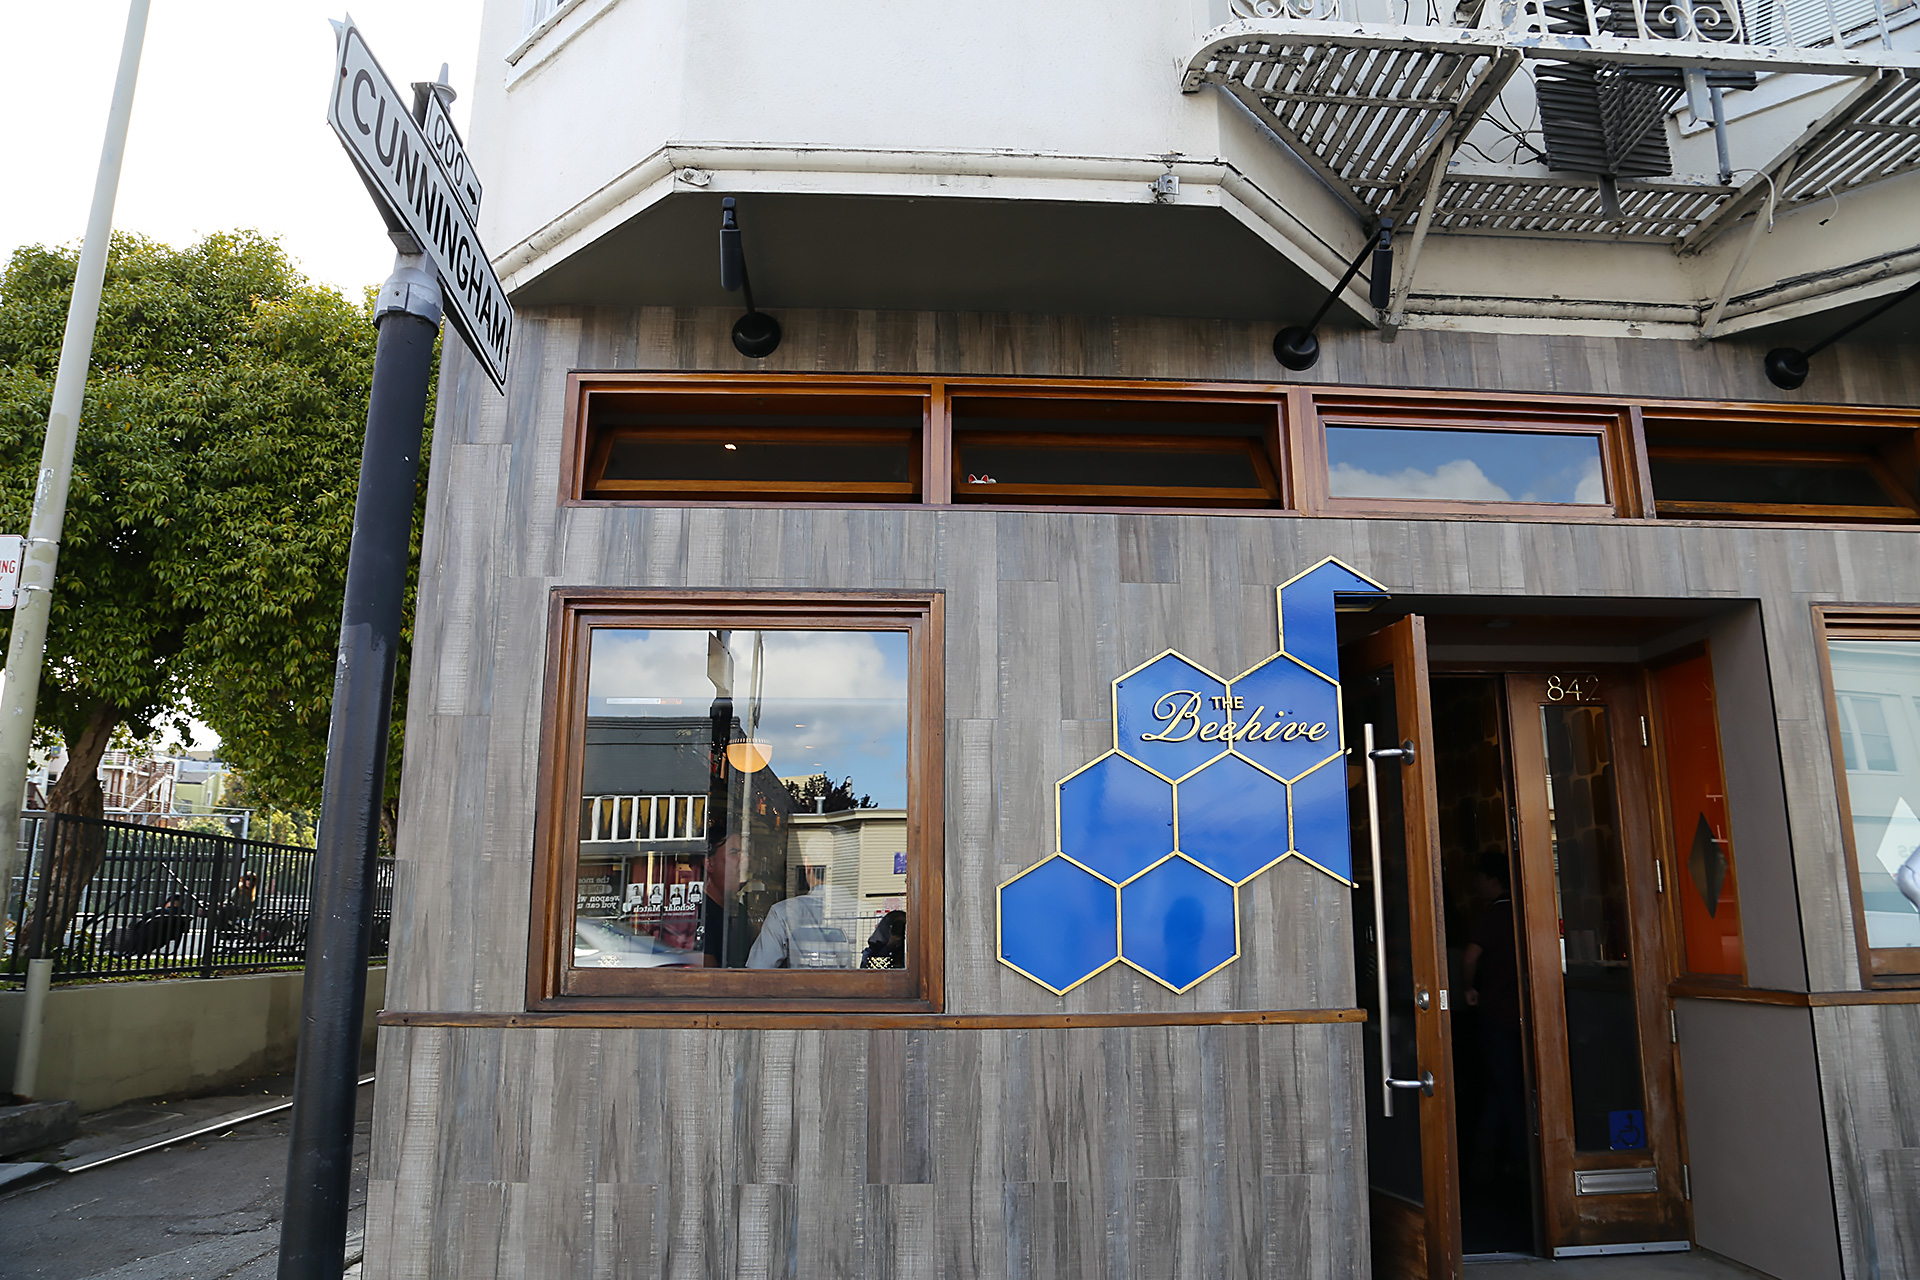 The Beehive exterior